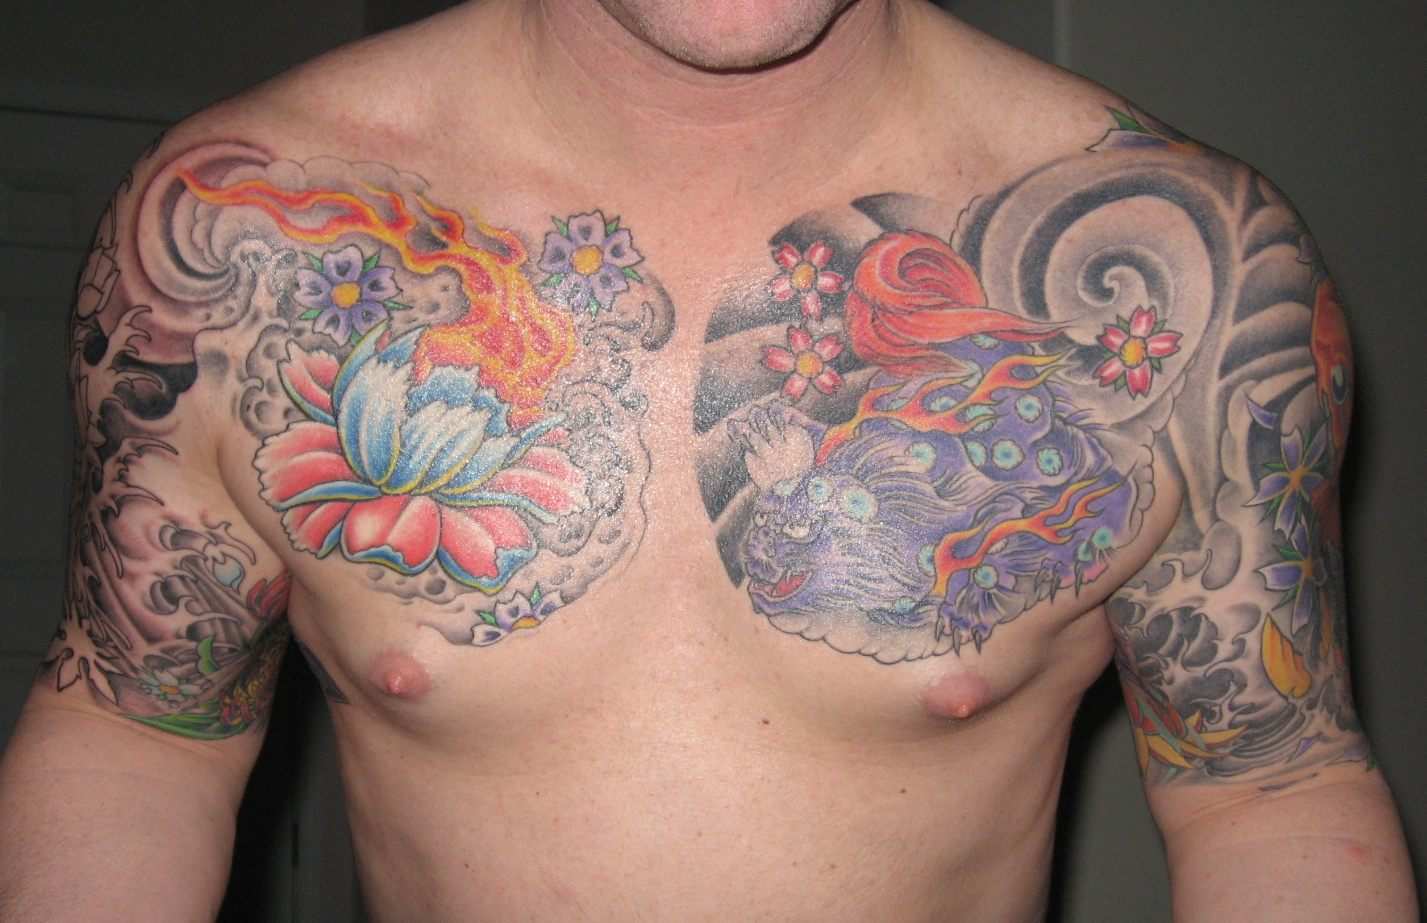 Tattoo Ideas For Women Chest: Information & Technology: Chest Tattoos